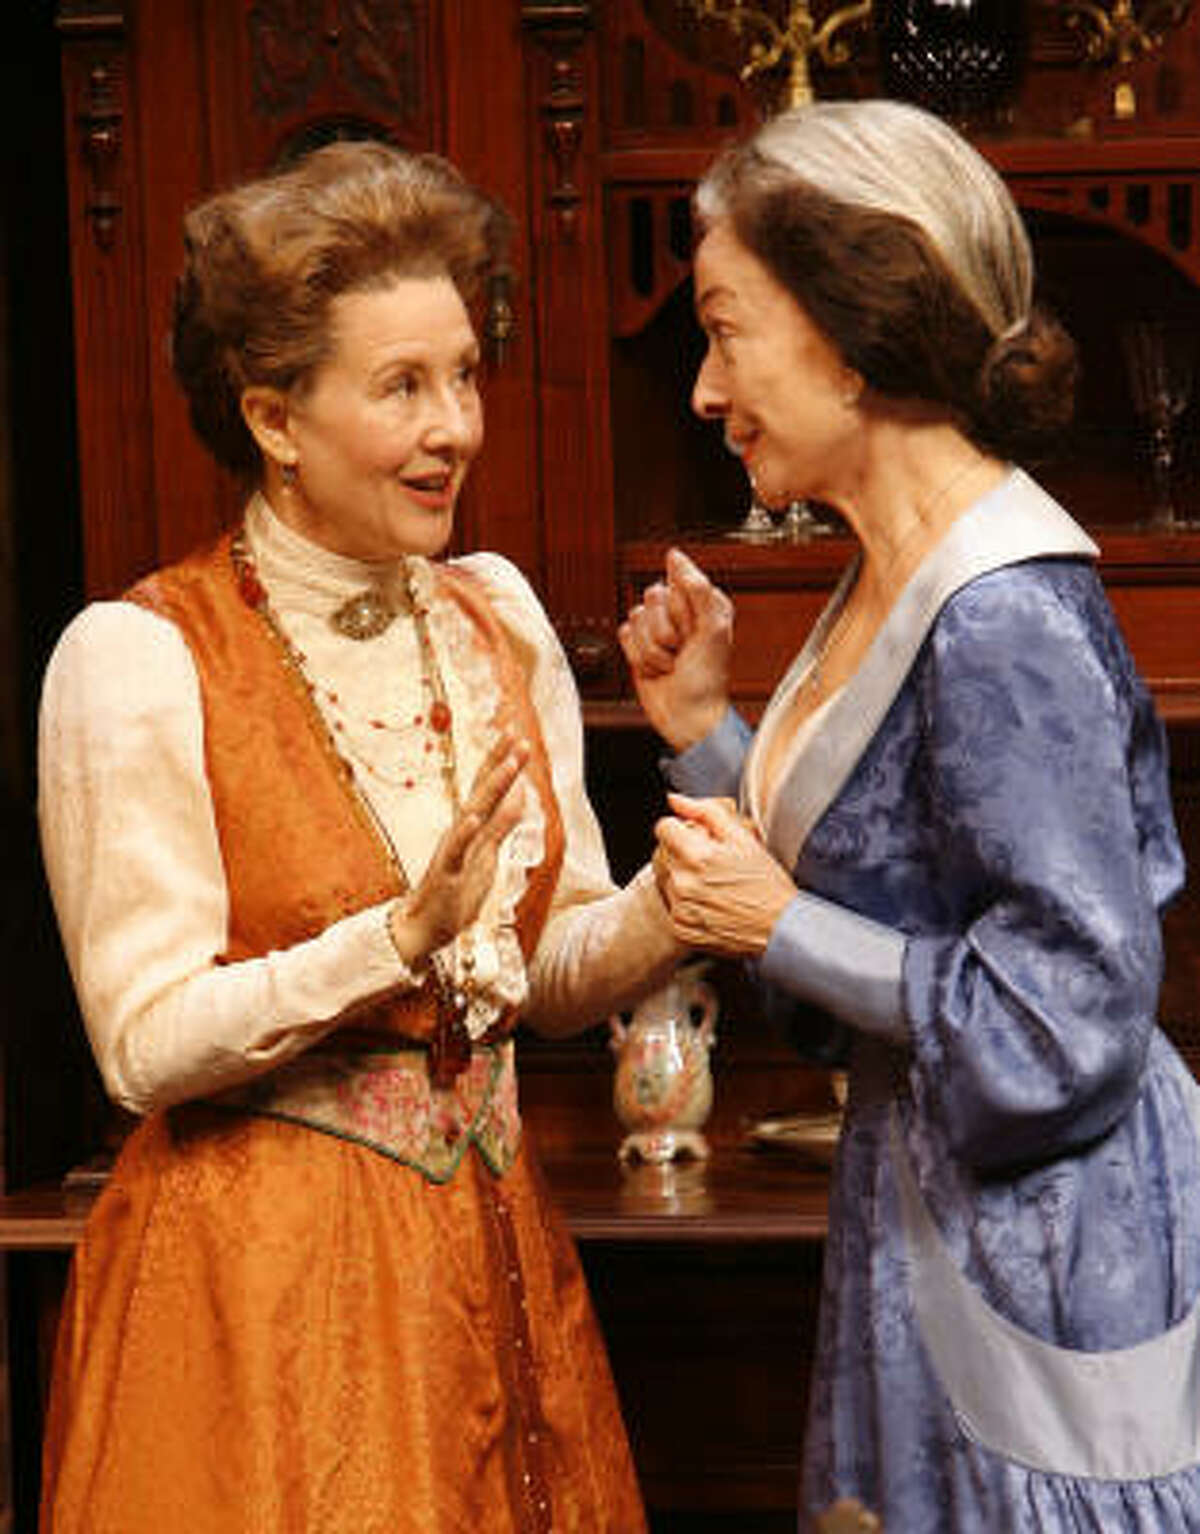 Mia Dillon, left, and Dixie Carter in Arsenic and Old Lace at the Alley Theatre in 2007.